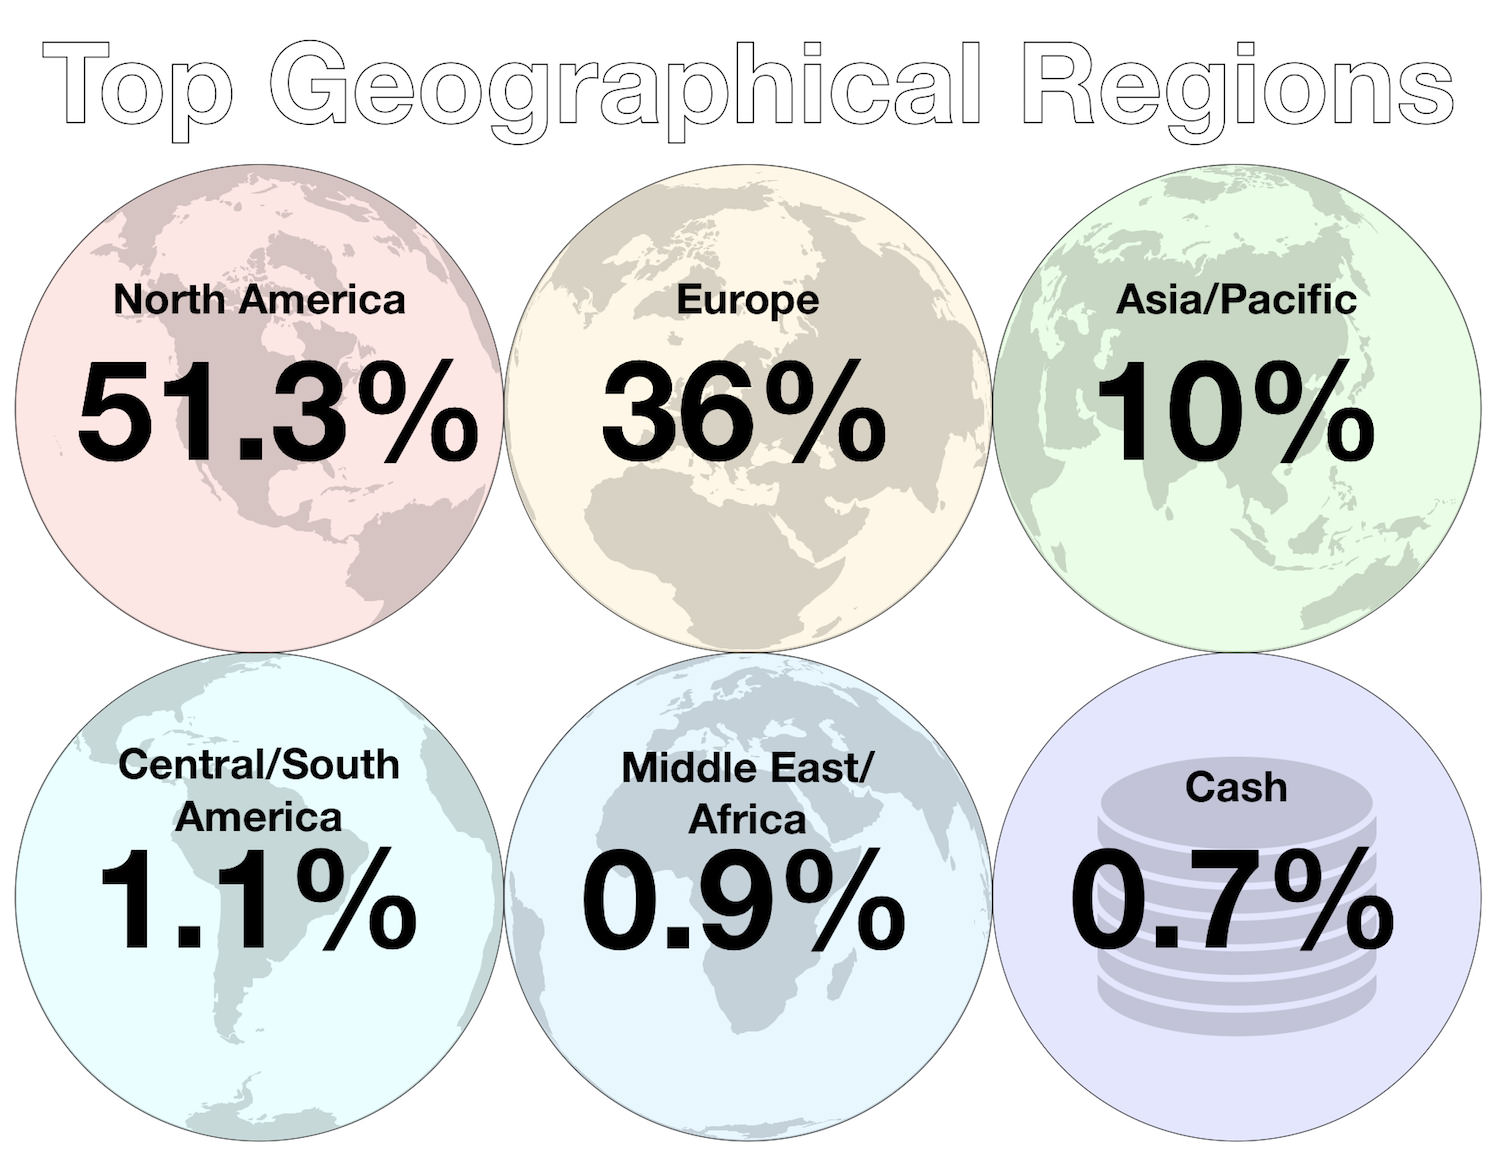 July 2018 - Investments - Top Geographical Regions